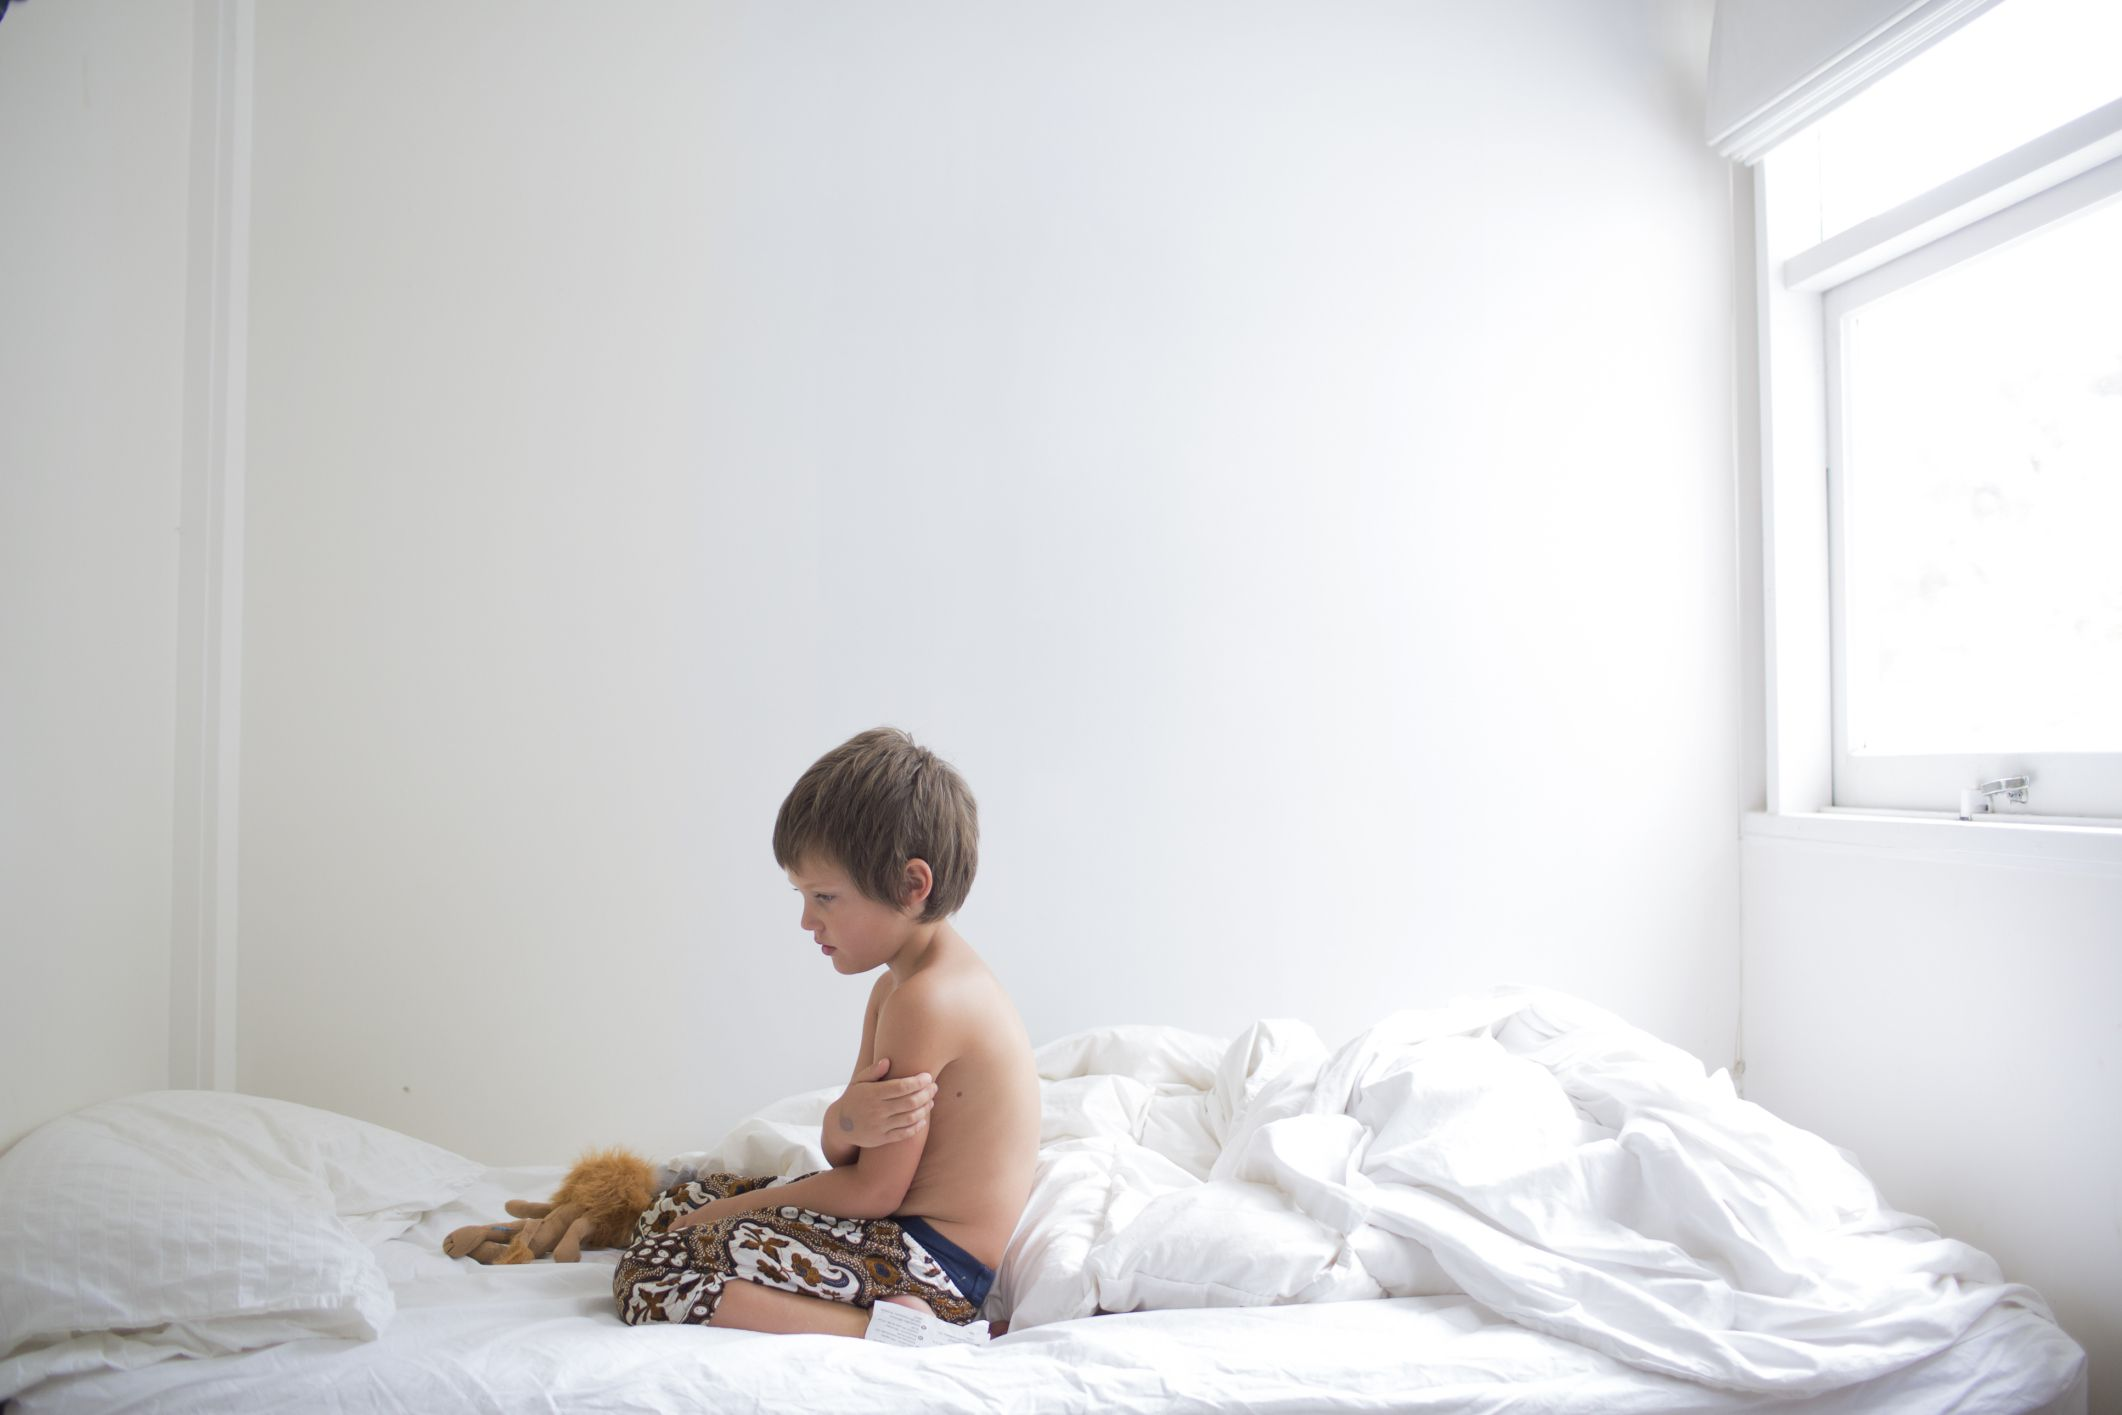 Child sitting up in bed